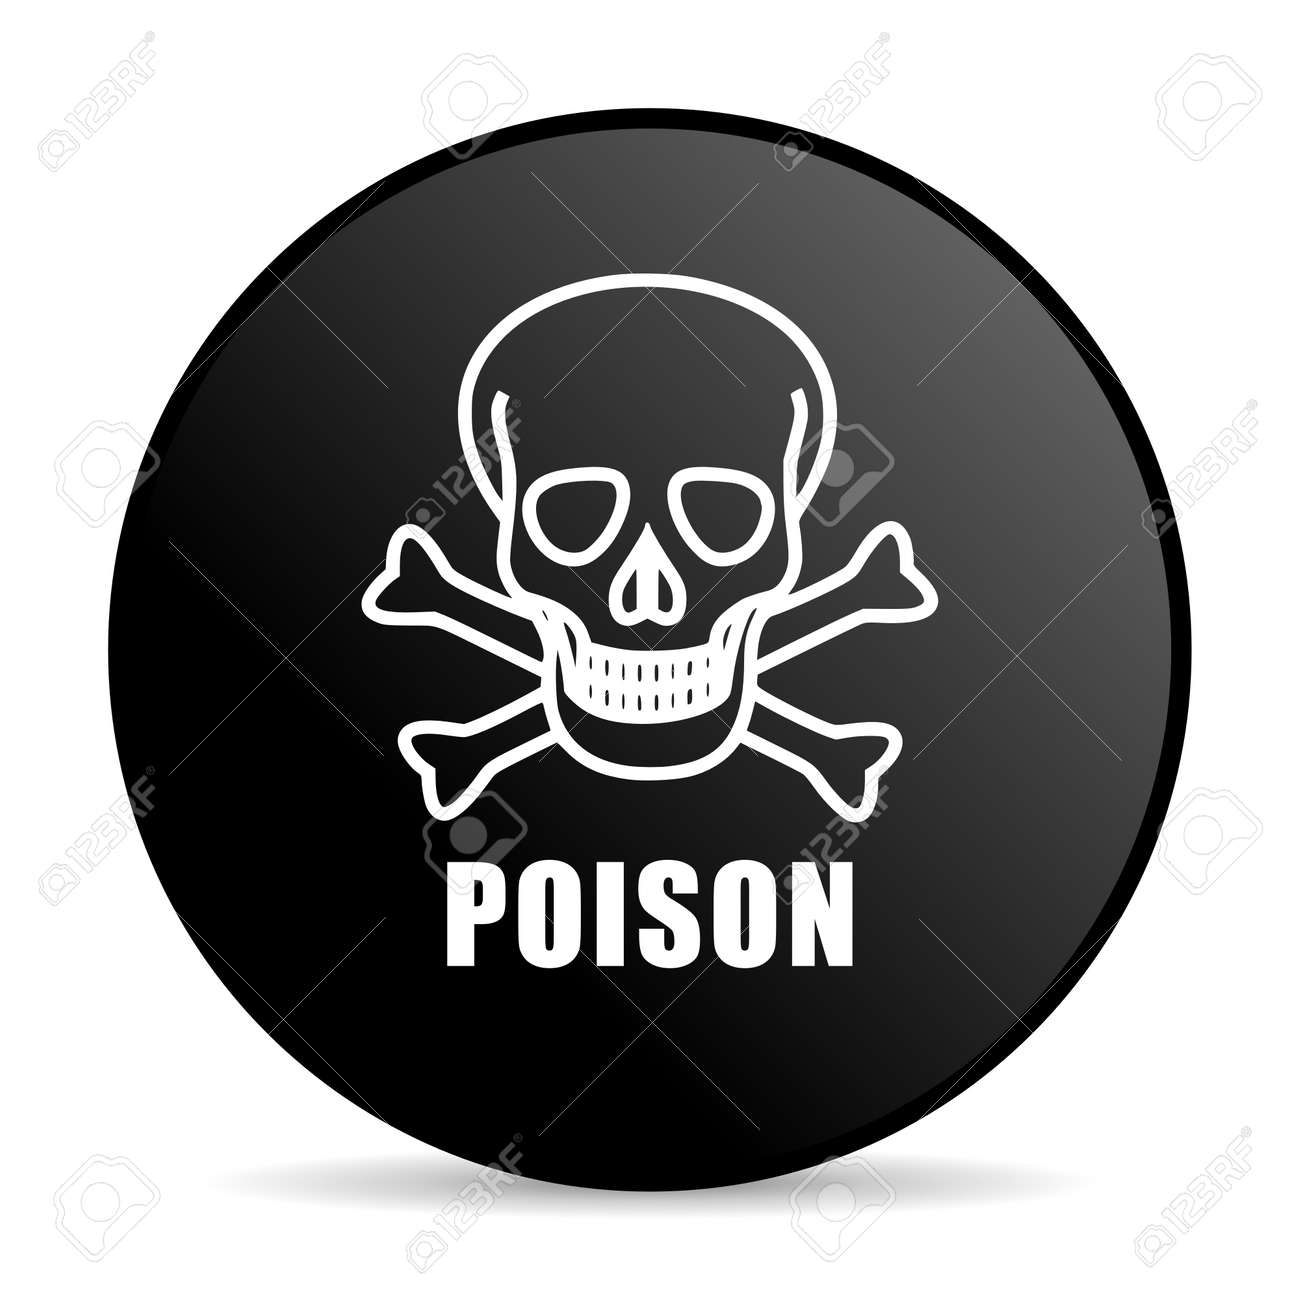 d13425fc61 Poison skull black color web design round internet icon on white  background. Stock Photo -